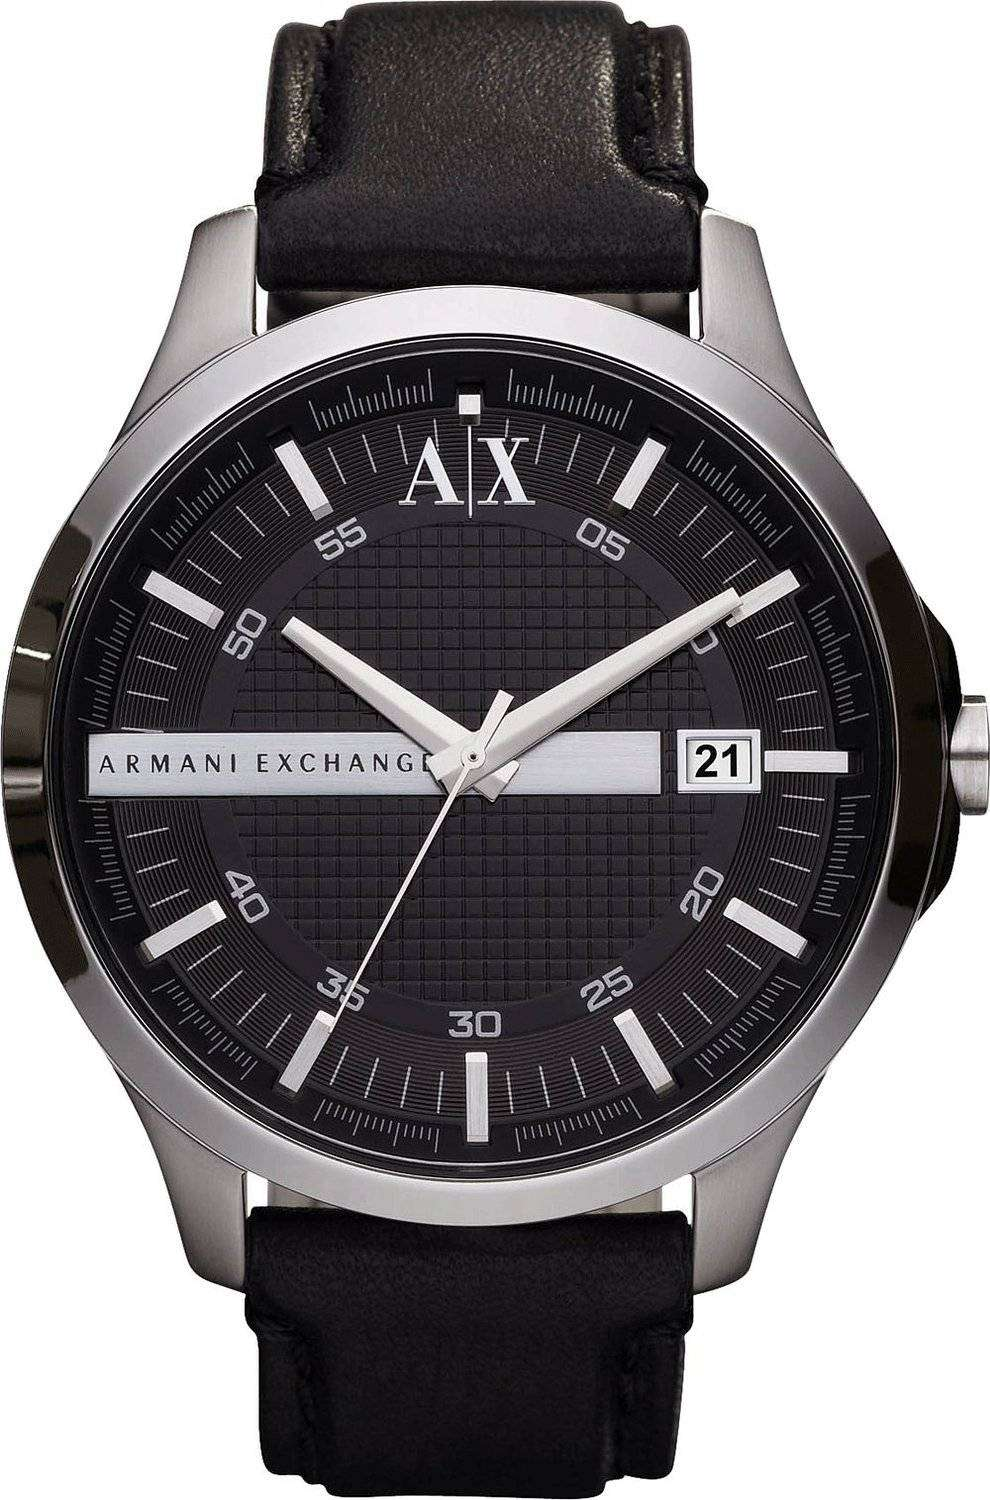 Armani exchange black dial leather strap ax2101 mens watch downunderwatches for Black leather strap men